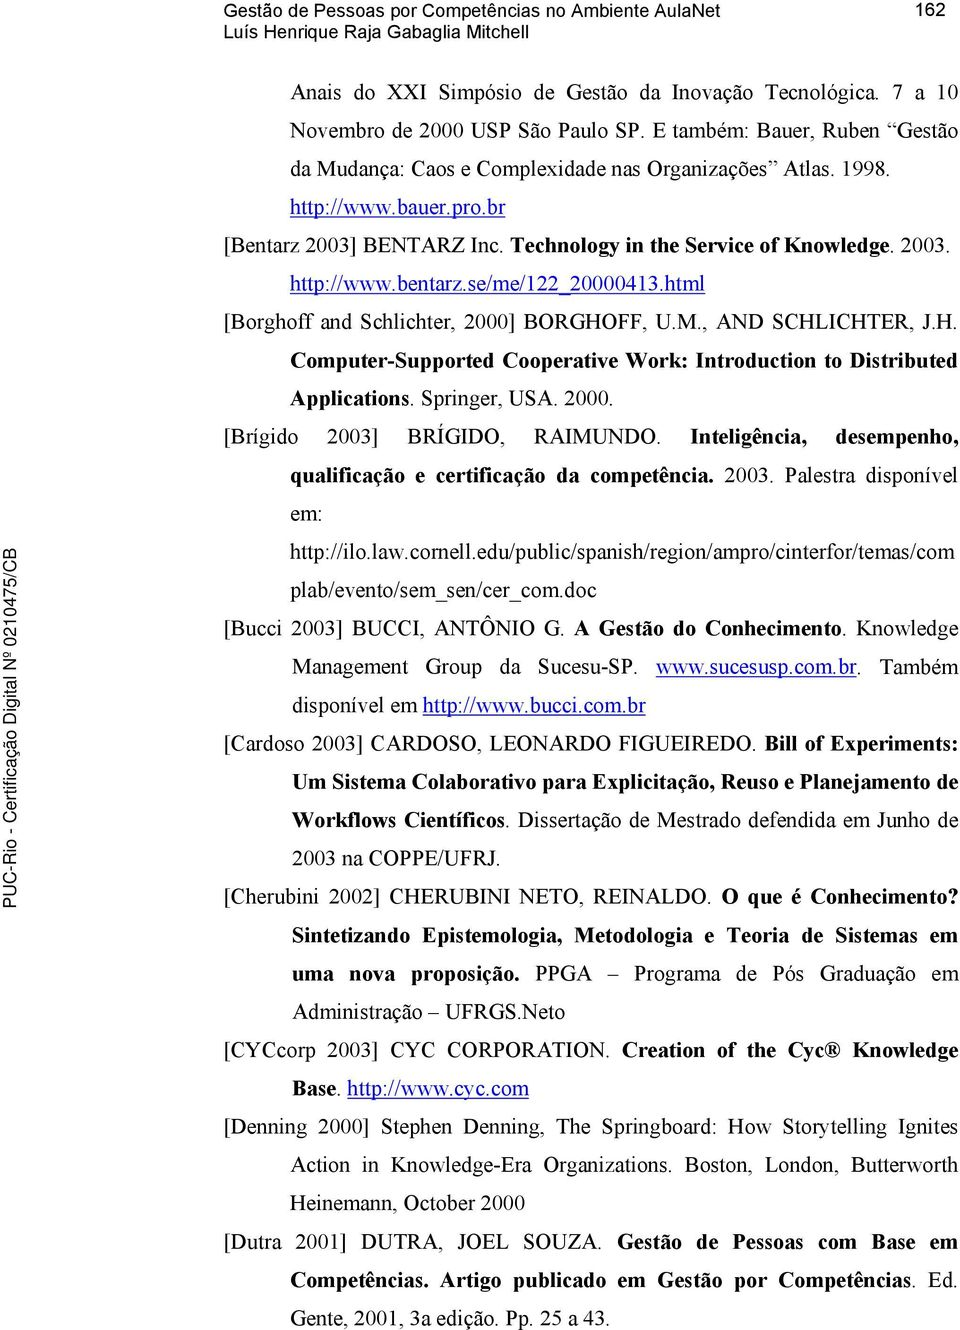 se/me/122_20000413.html [Brghff and Schlichter, 2000] BORGHOFF, U.M., AND SCHLICHTER, J.H. Cmputer-Supprted Cperative Wrk: Intrductin t Distributed Applicatins. Springer, USA. 2000. [Brígid 2003] BRÍGIDO, RAIMUNDO.